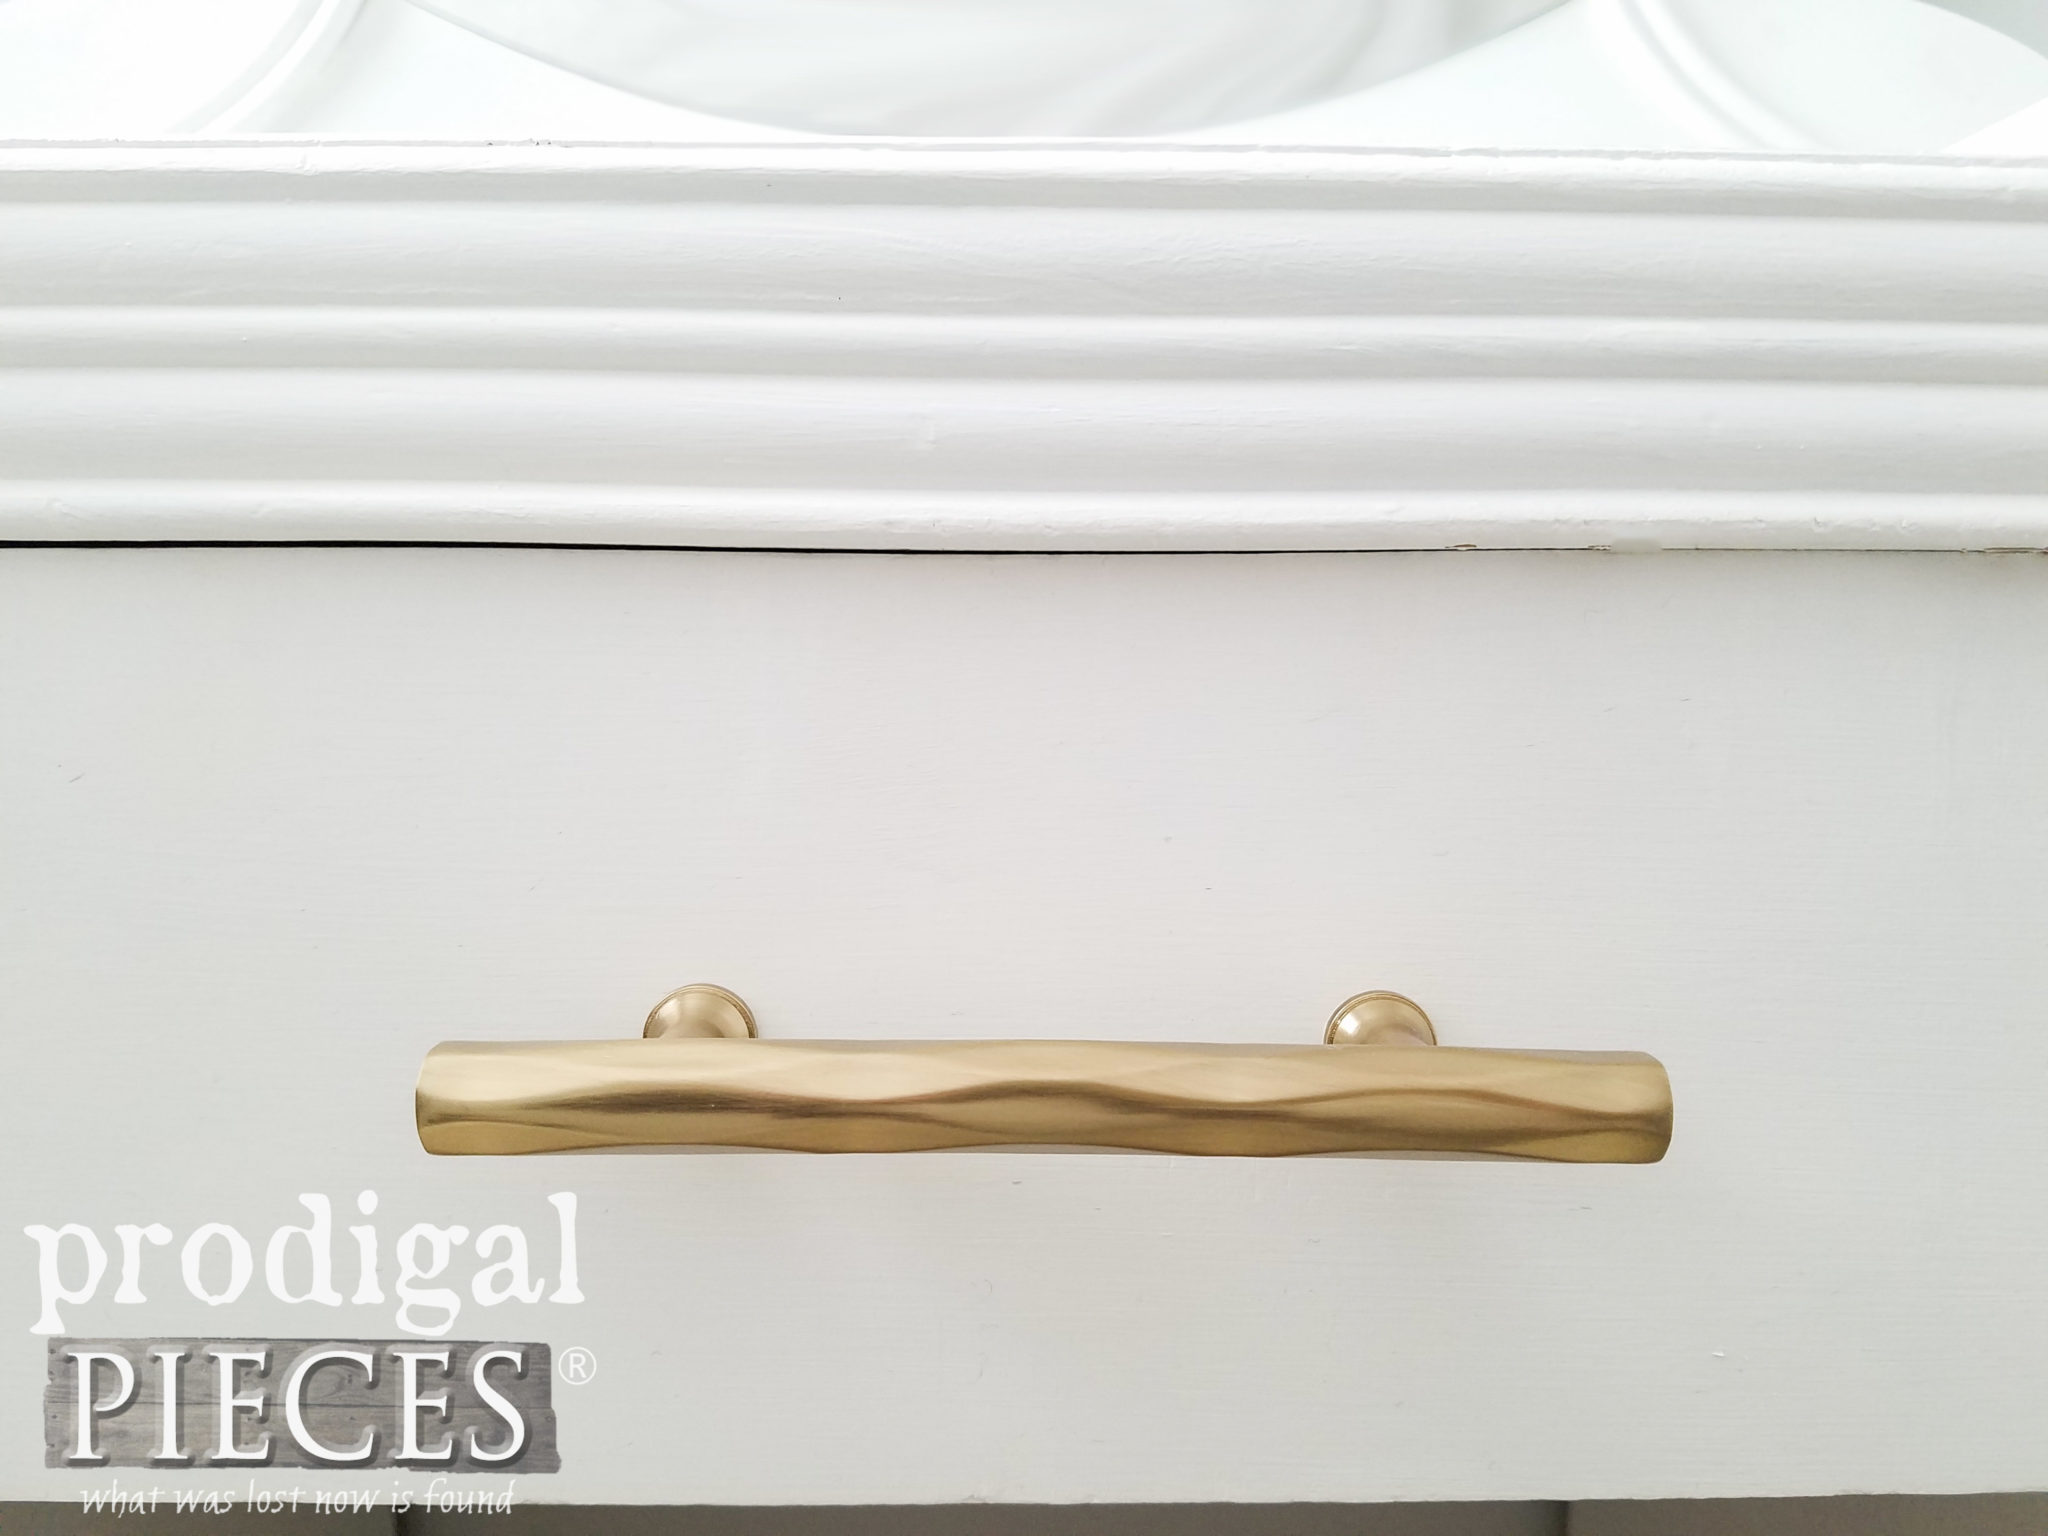 Art Deco Brass Drawer Pulls on Vintage Vanity by Prodigal Pieces | prodigalpieces.com